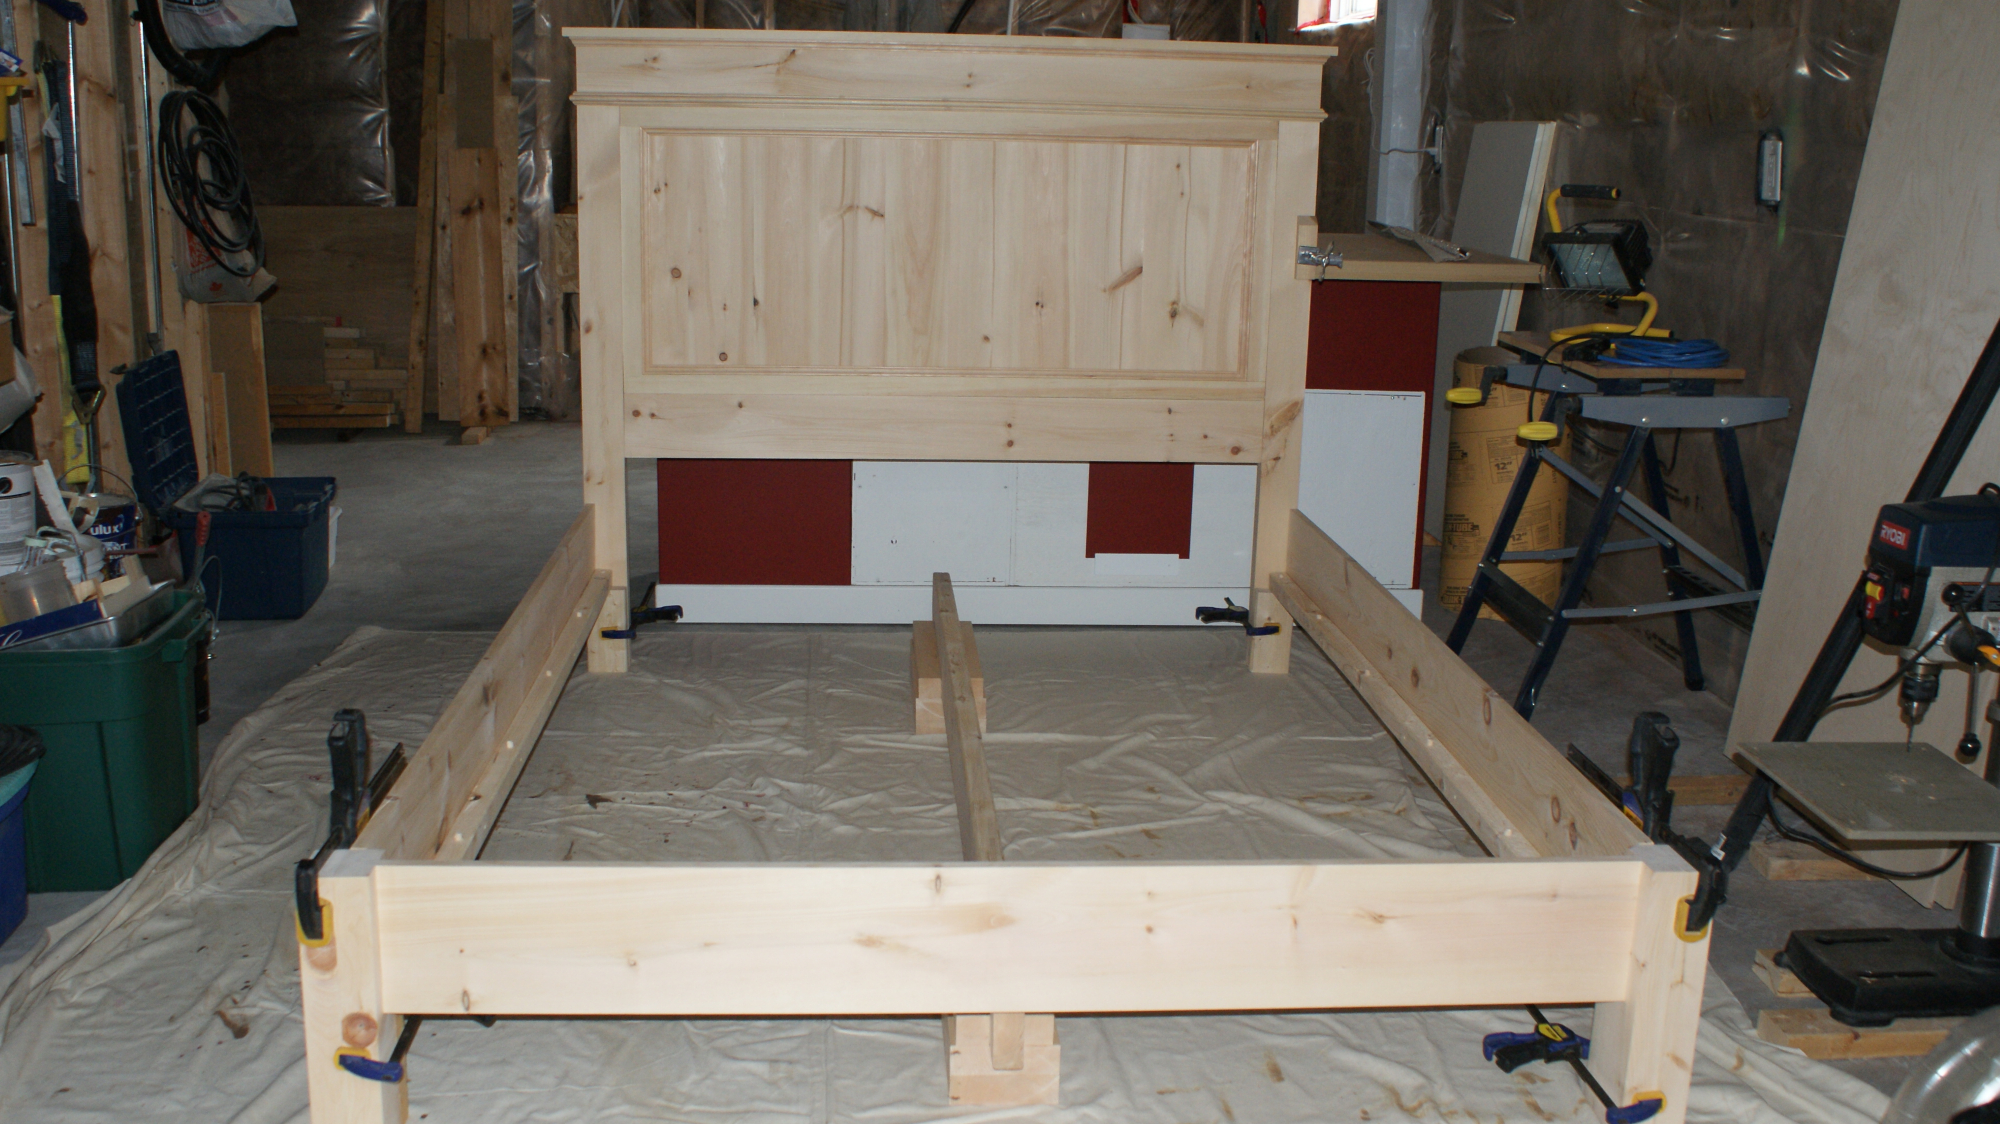 Bedframe before paint